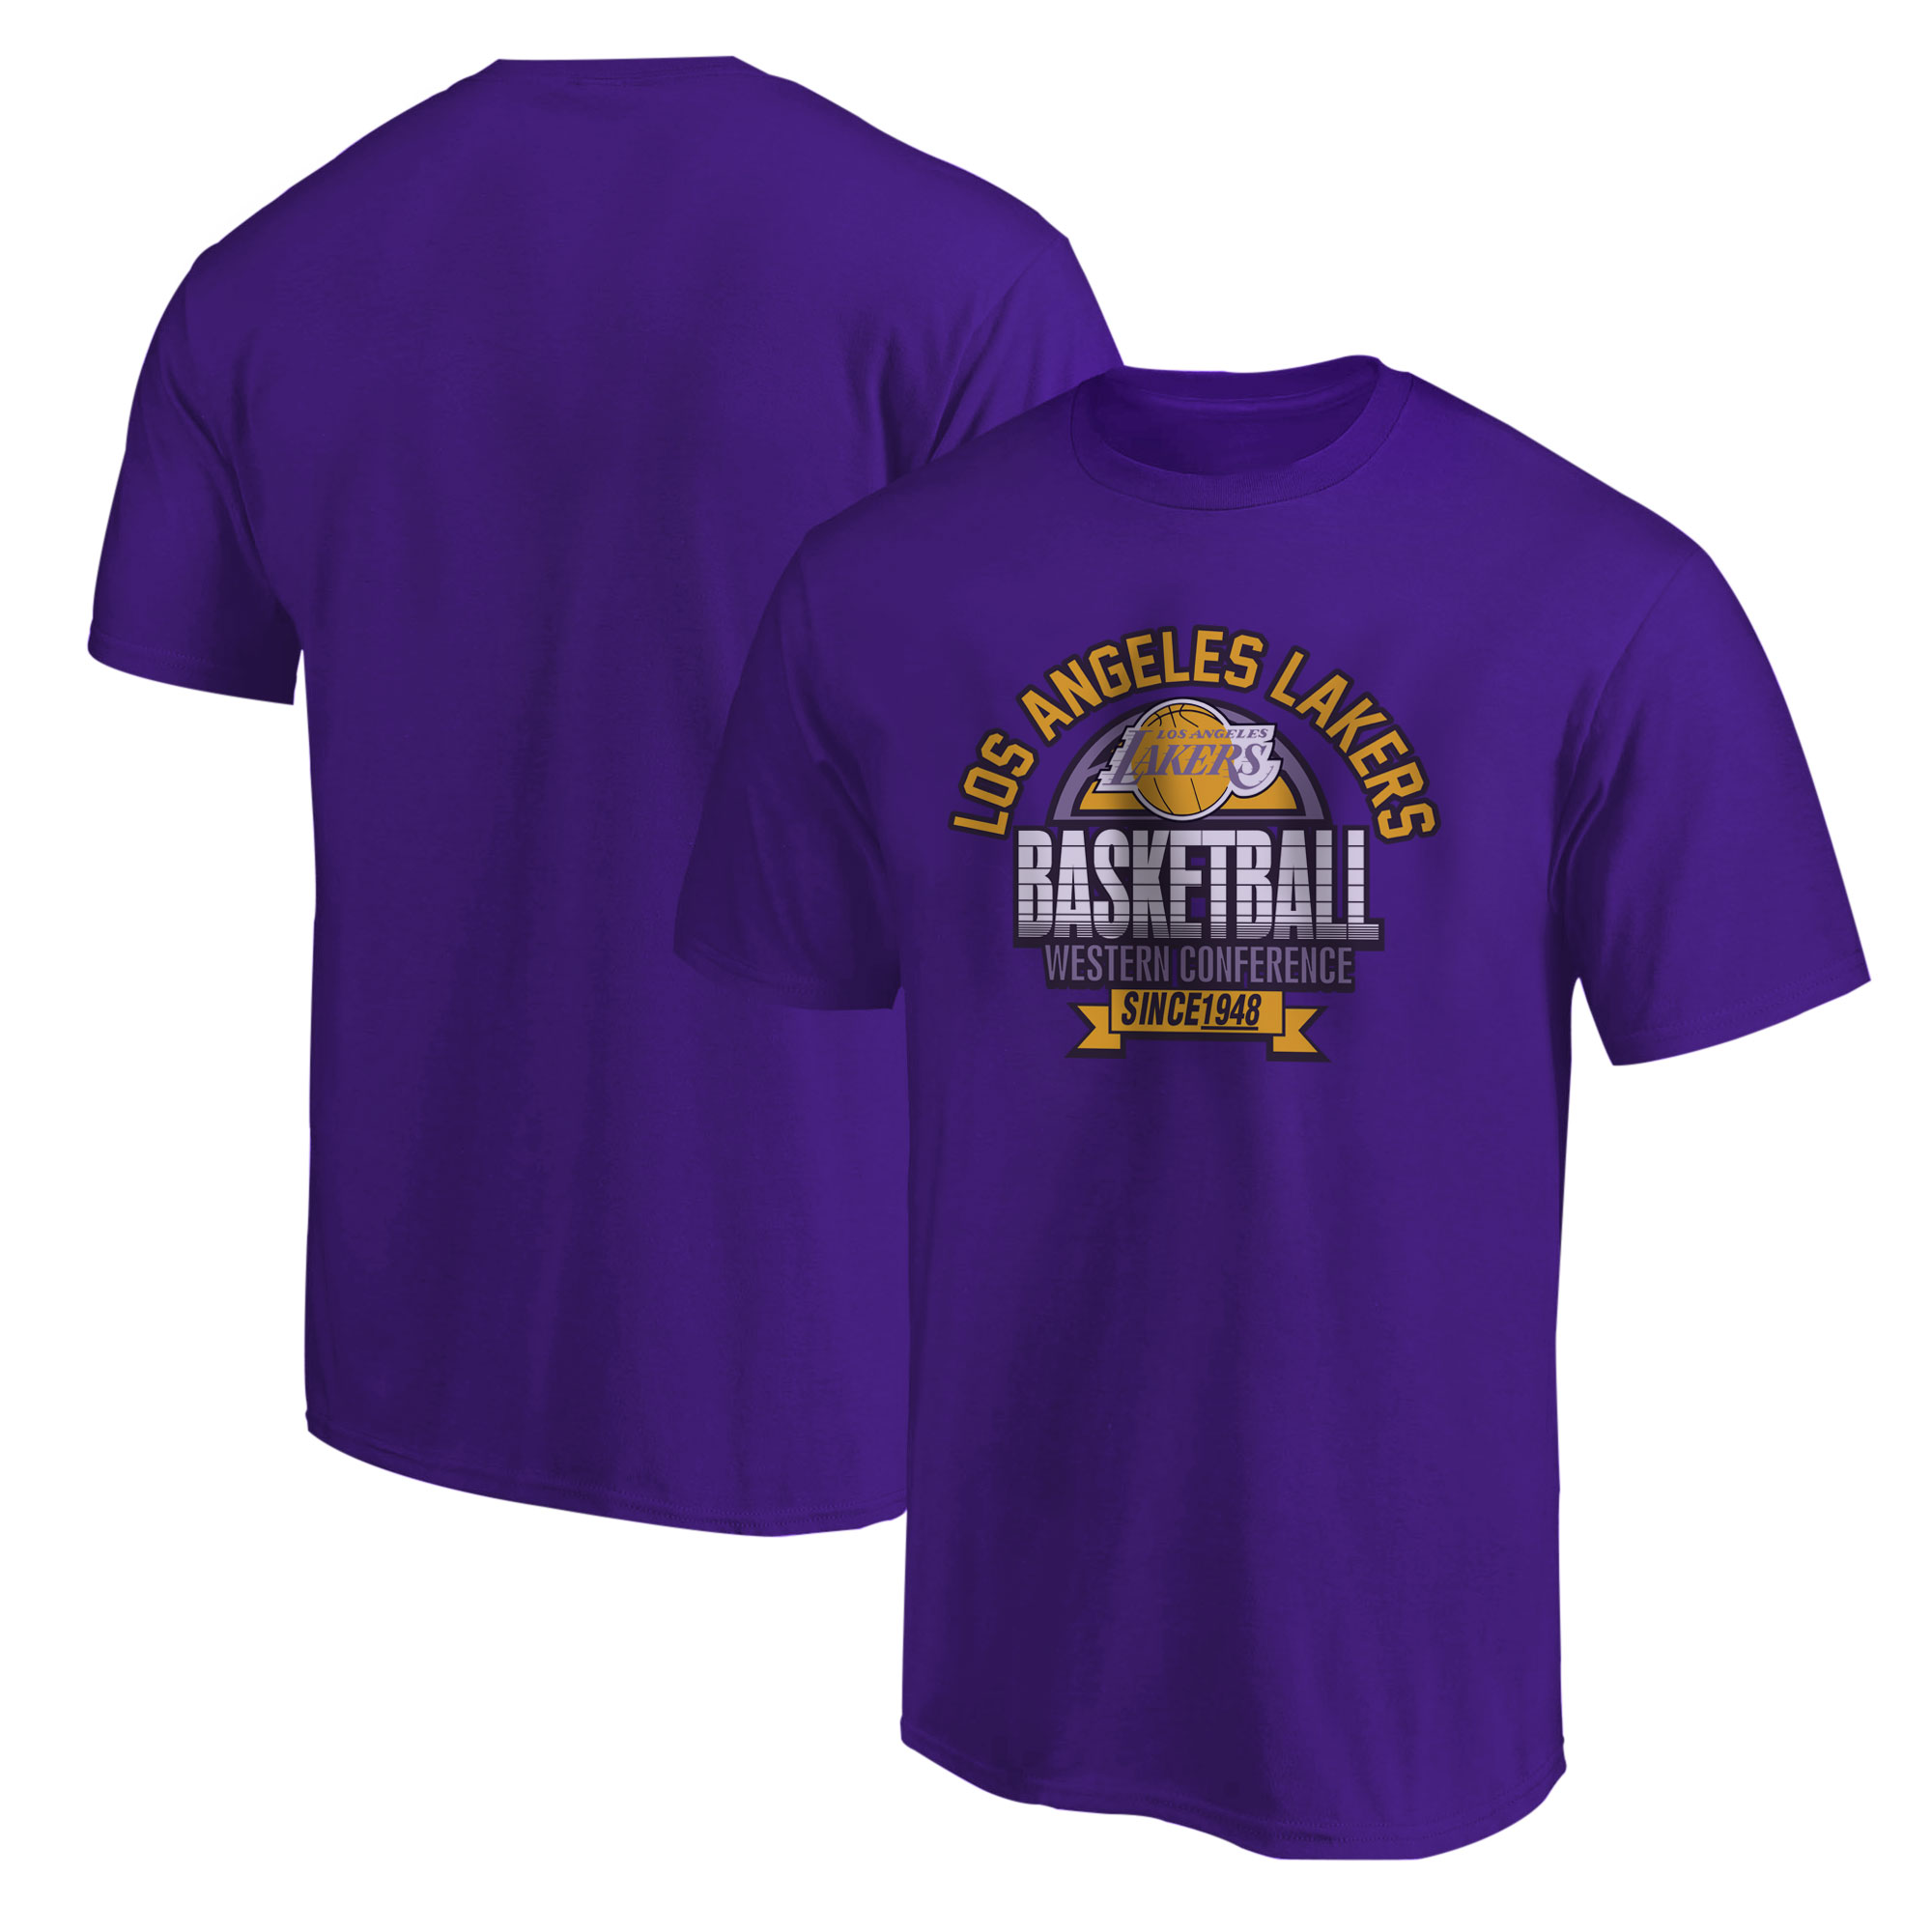 L.A.Lakers Since 1948 Tshirt (OUT-TSH-PRP-140-NBA-LAL-SINCE)